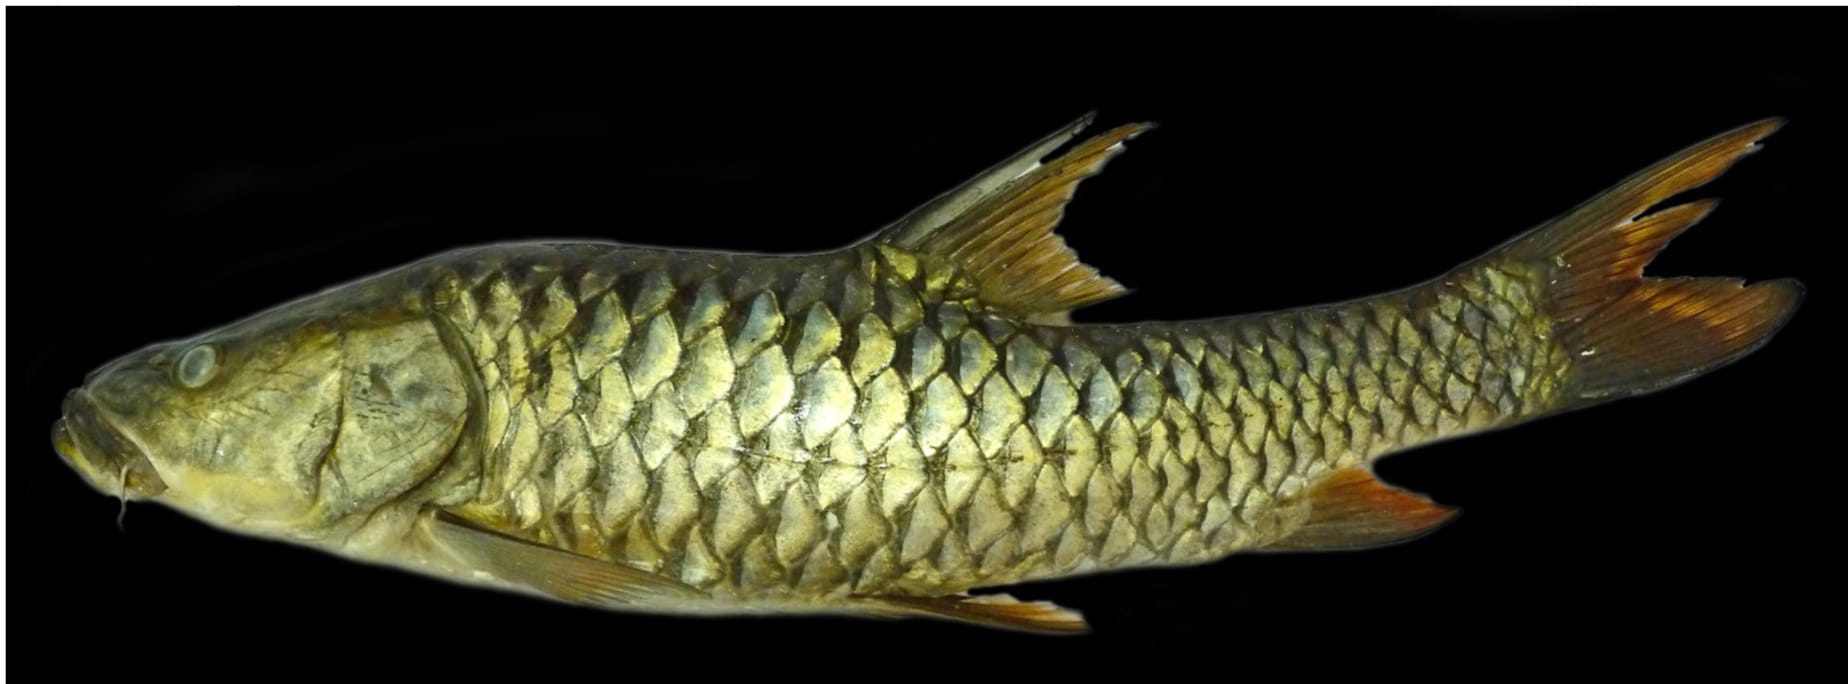 The humpback mahseer was earlier confused with the golden mahseer (Tor putitora) found in Himalayan rivers and streams. This is an image of a preserved specimen of the humpback which has been given the scientific name (Tor remadevii) in June 2018, after much research and debate. Photo: Pinder et. al, CC BY 4.0